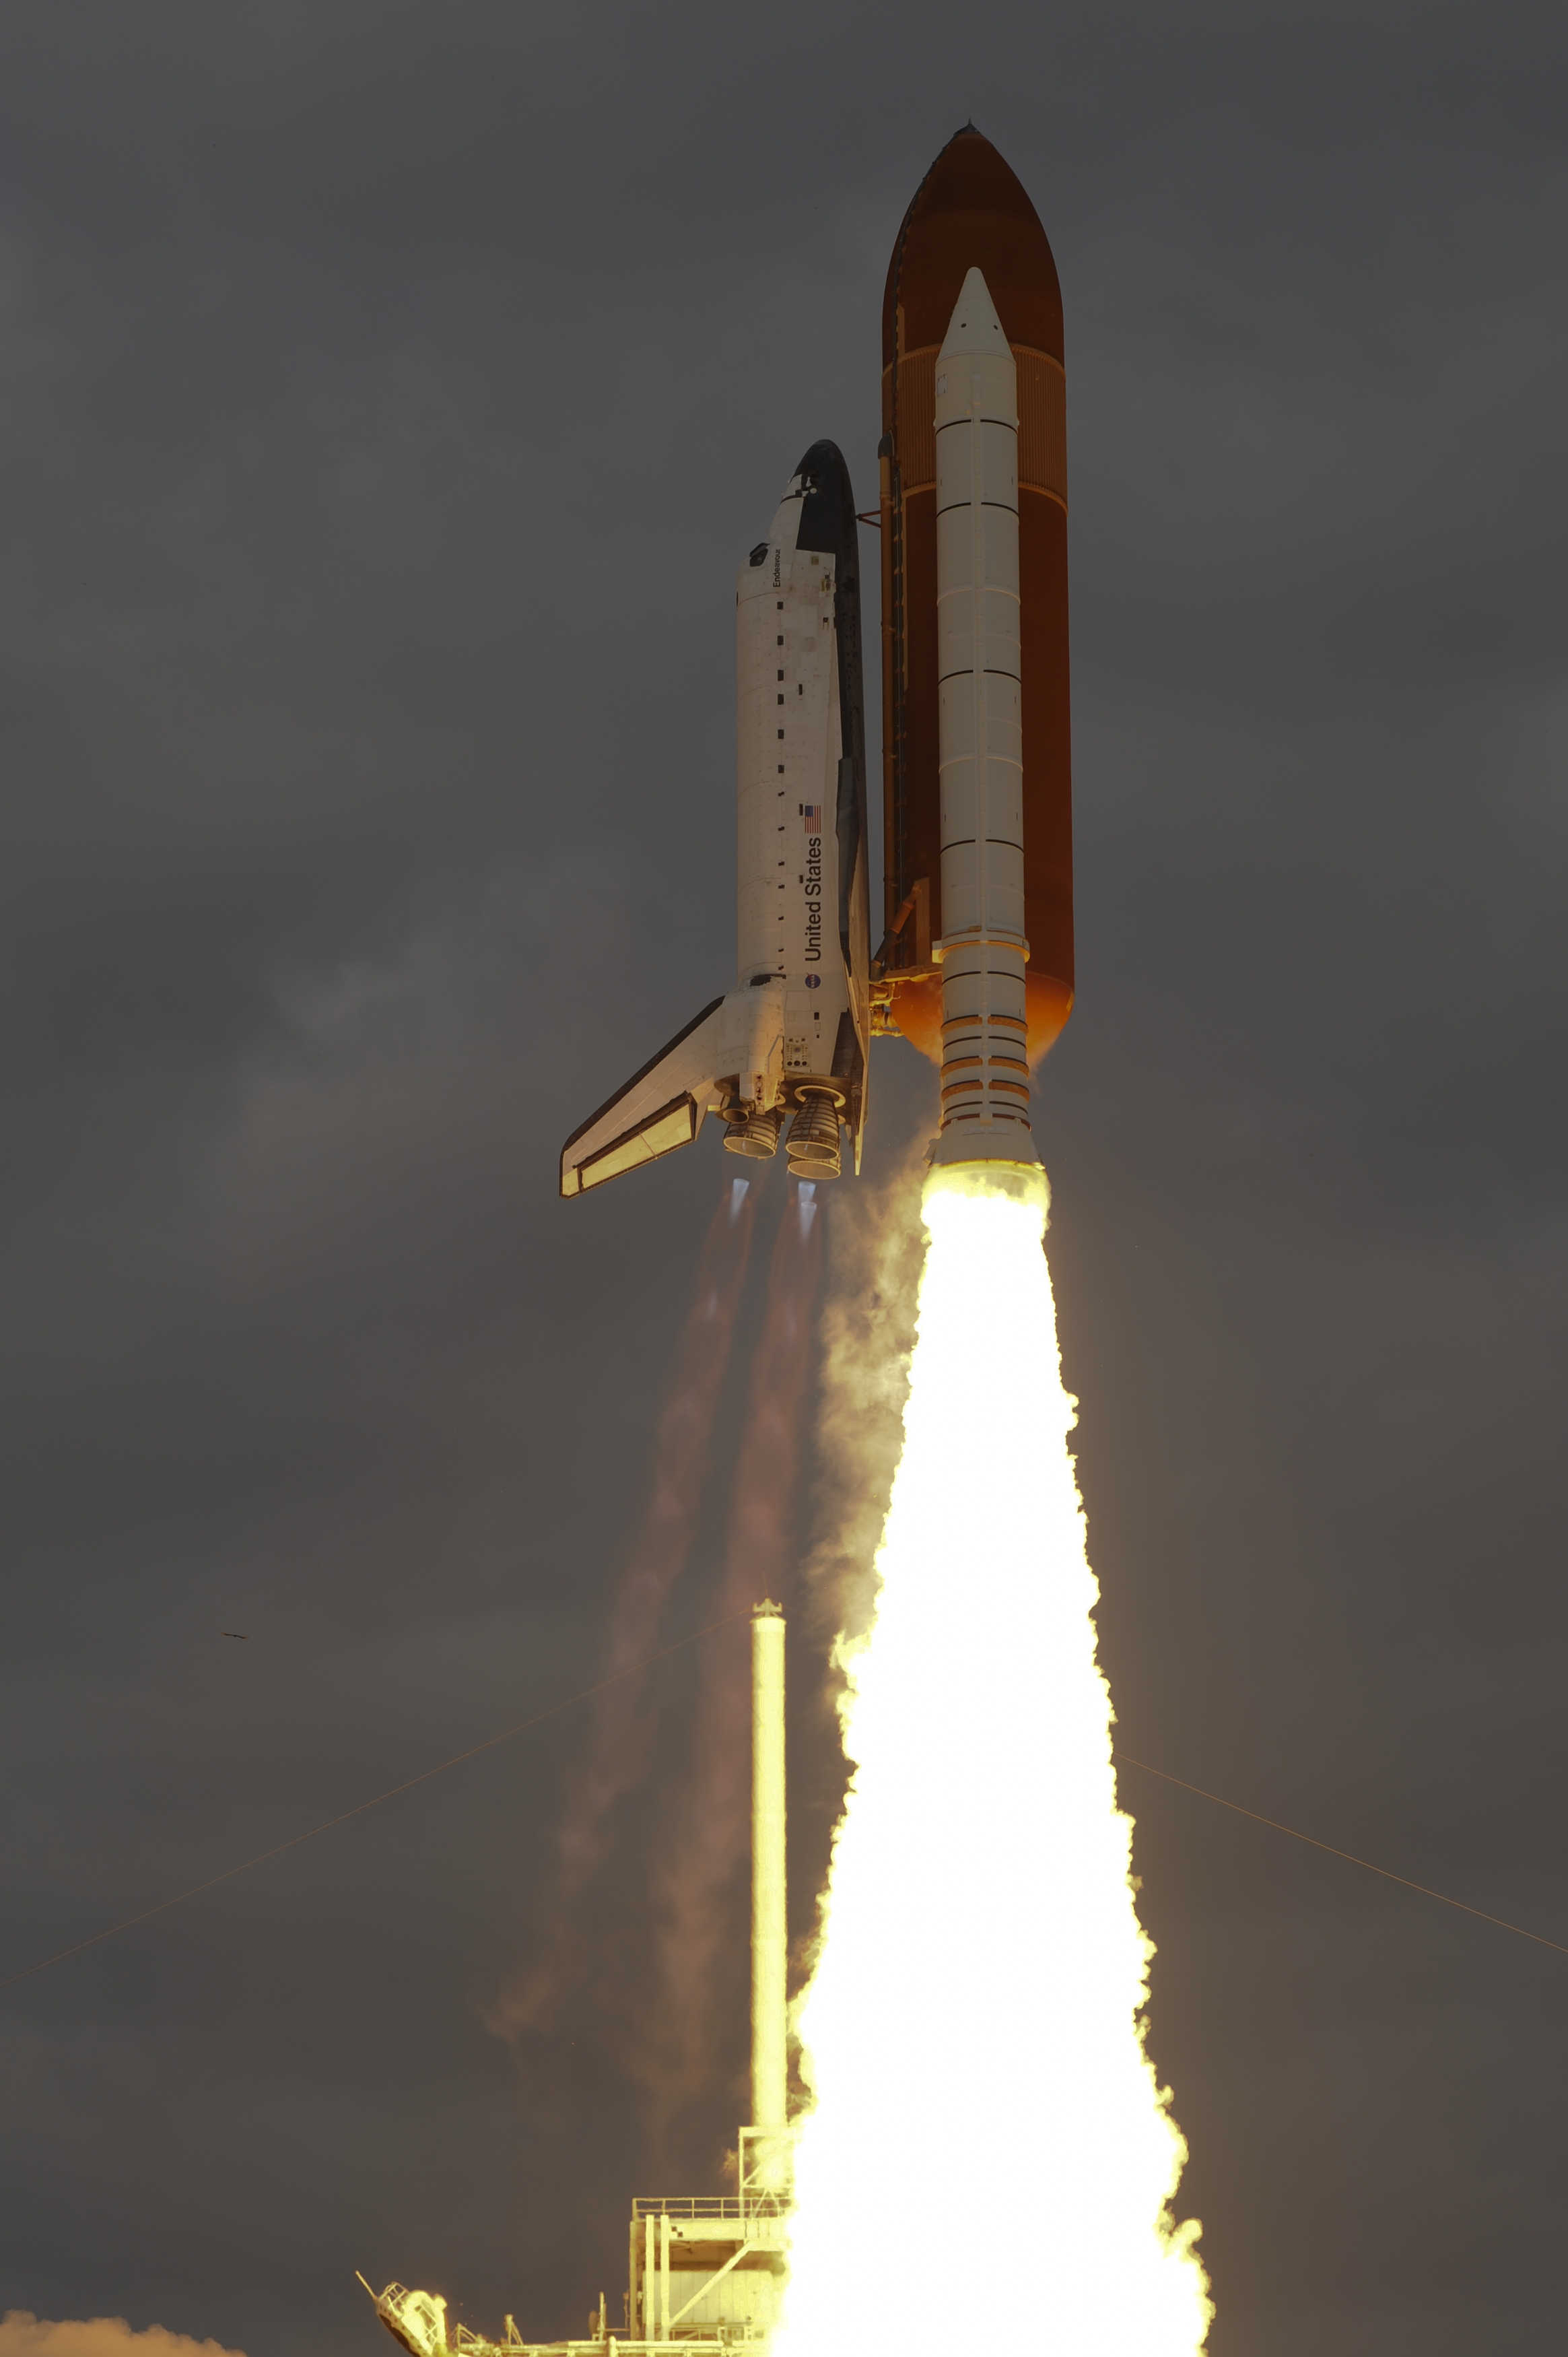 Space in Images - 2011 - 05 - Launch of Space Shuttle ...